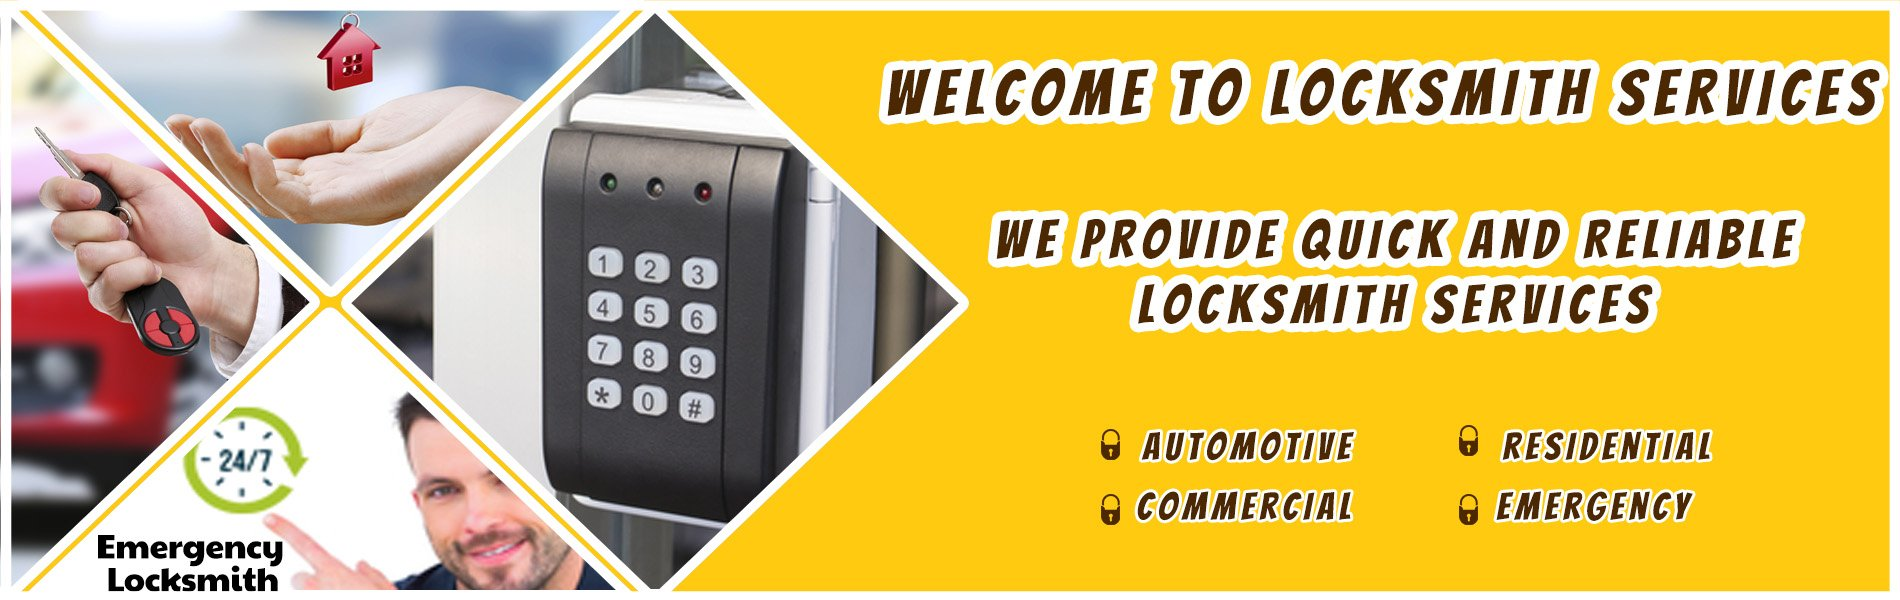 Expert Locksmith Store Jersey City, NJ 201-367-1923